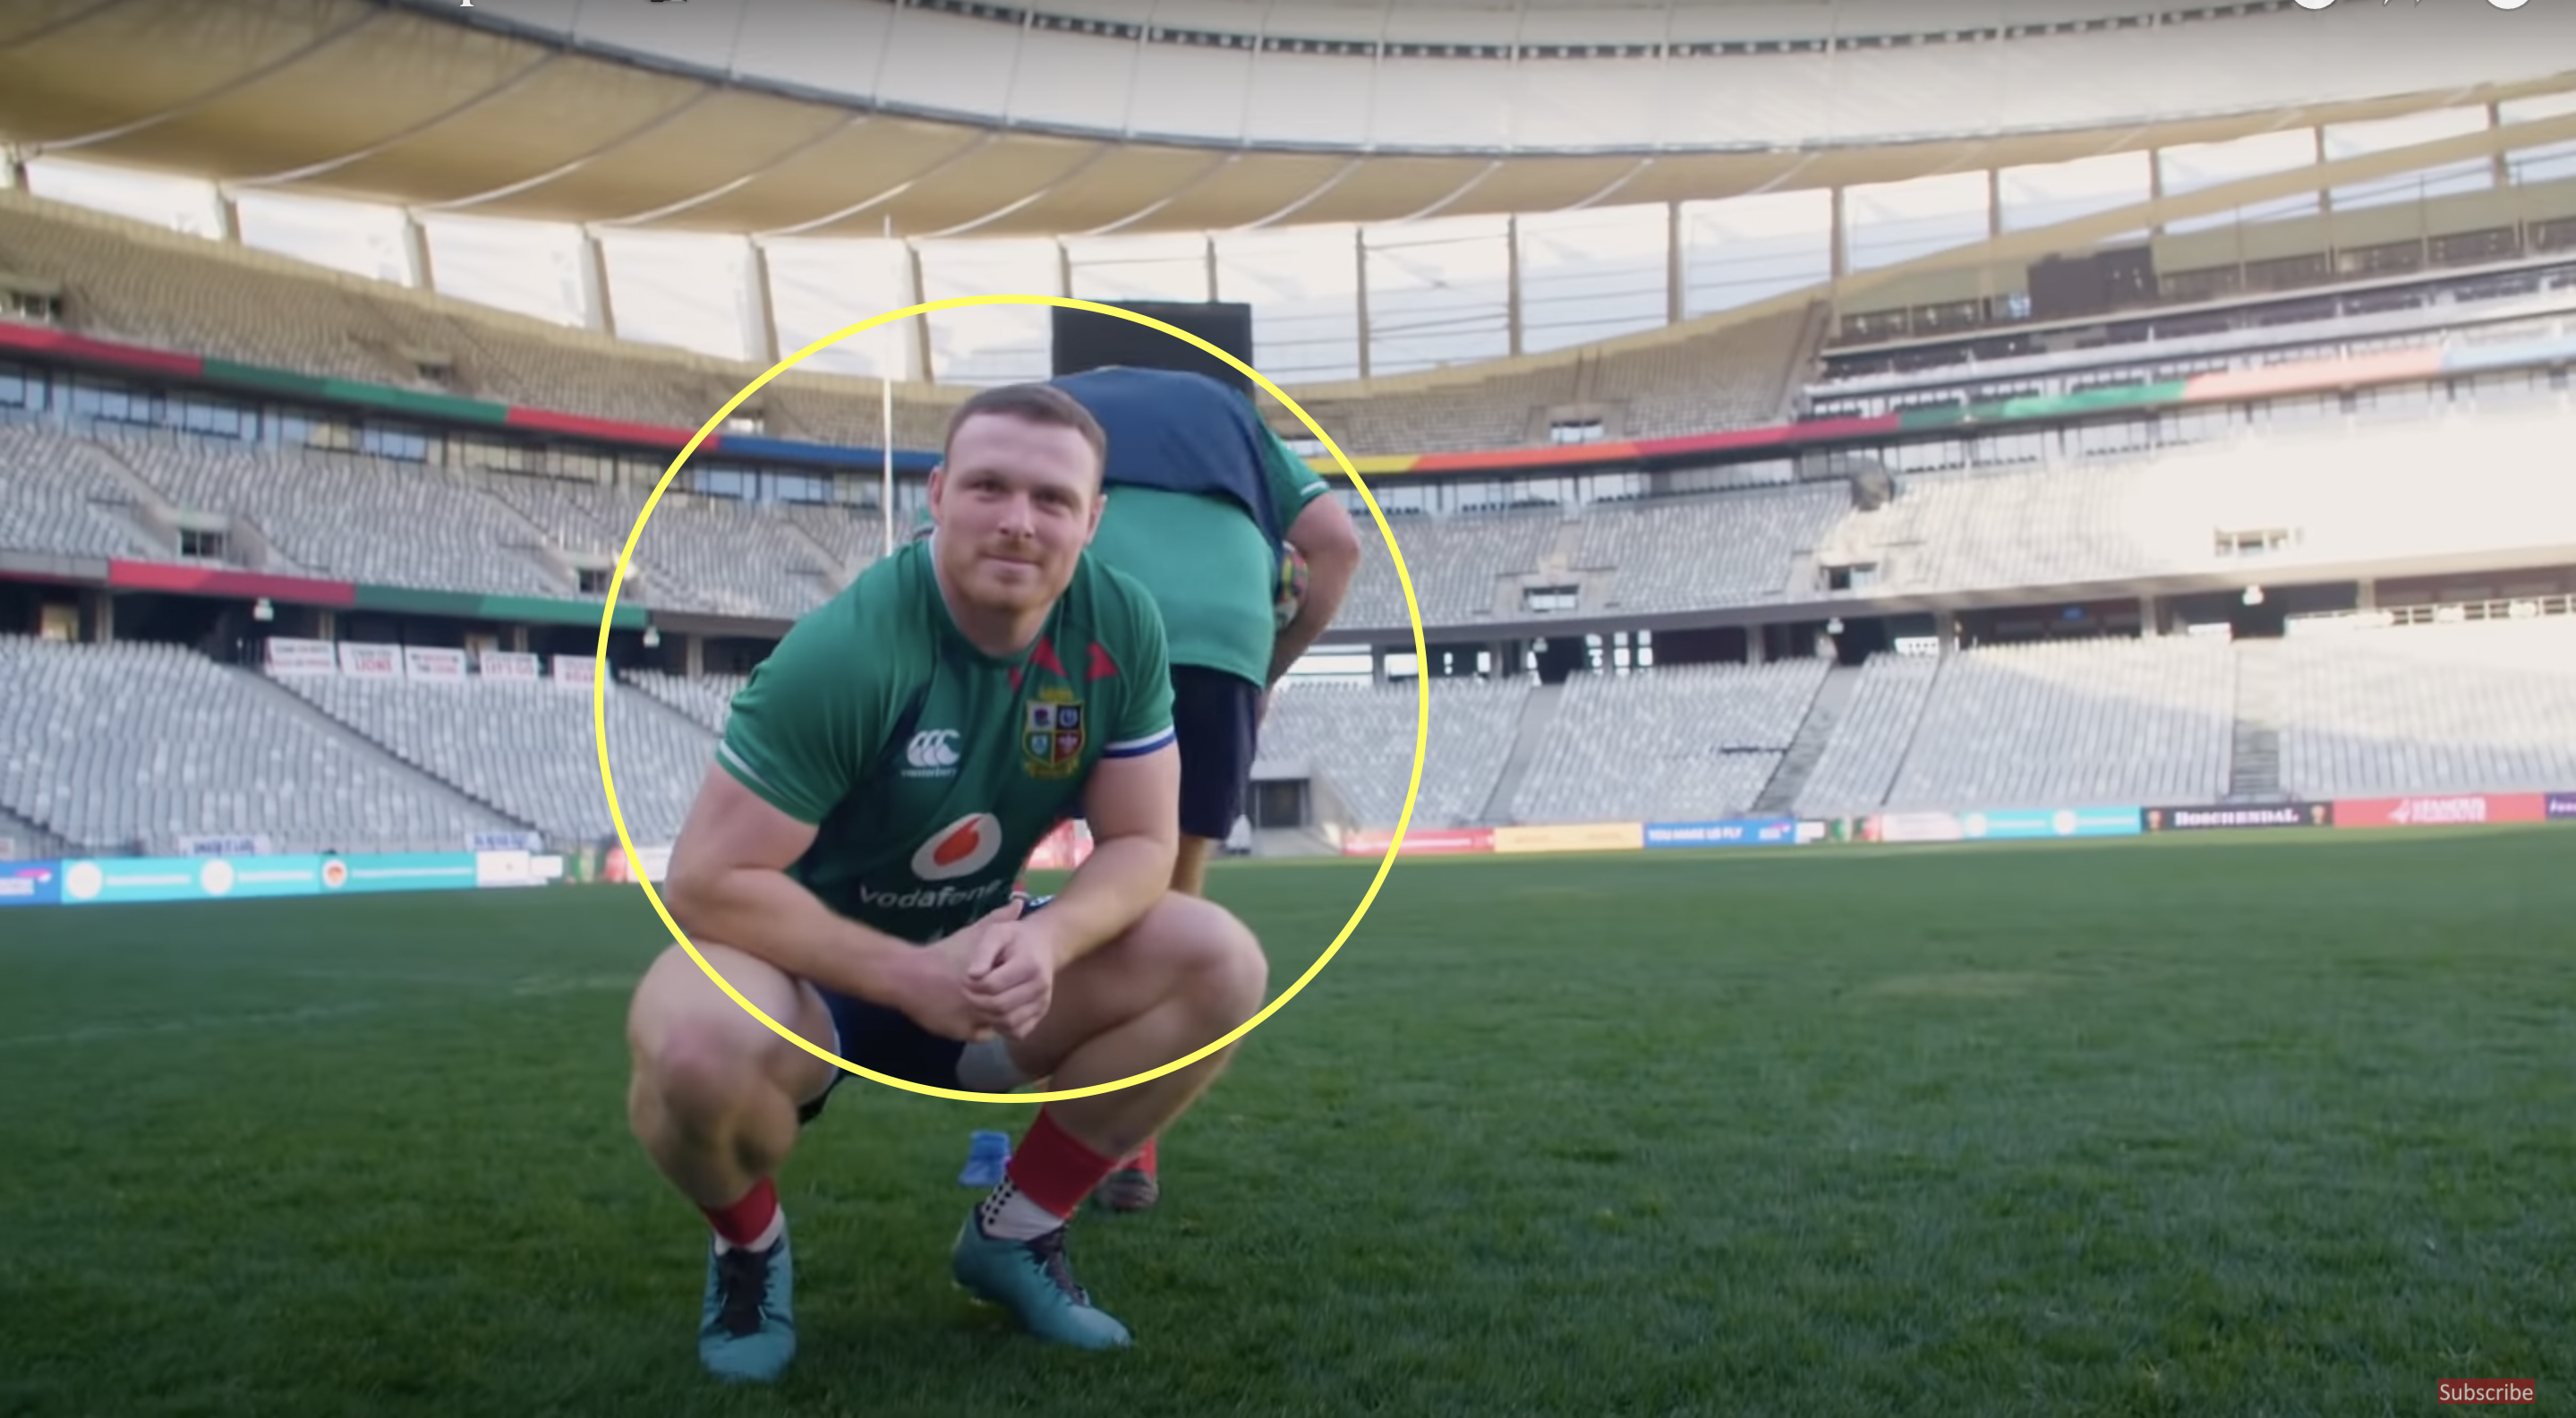 Sam Simmonds proves he can literally do everything on a rugby pitch